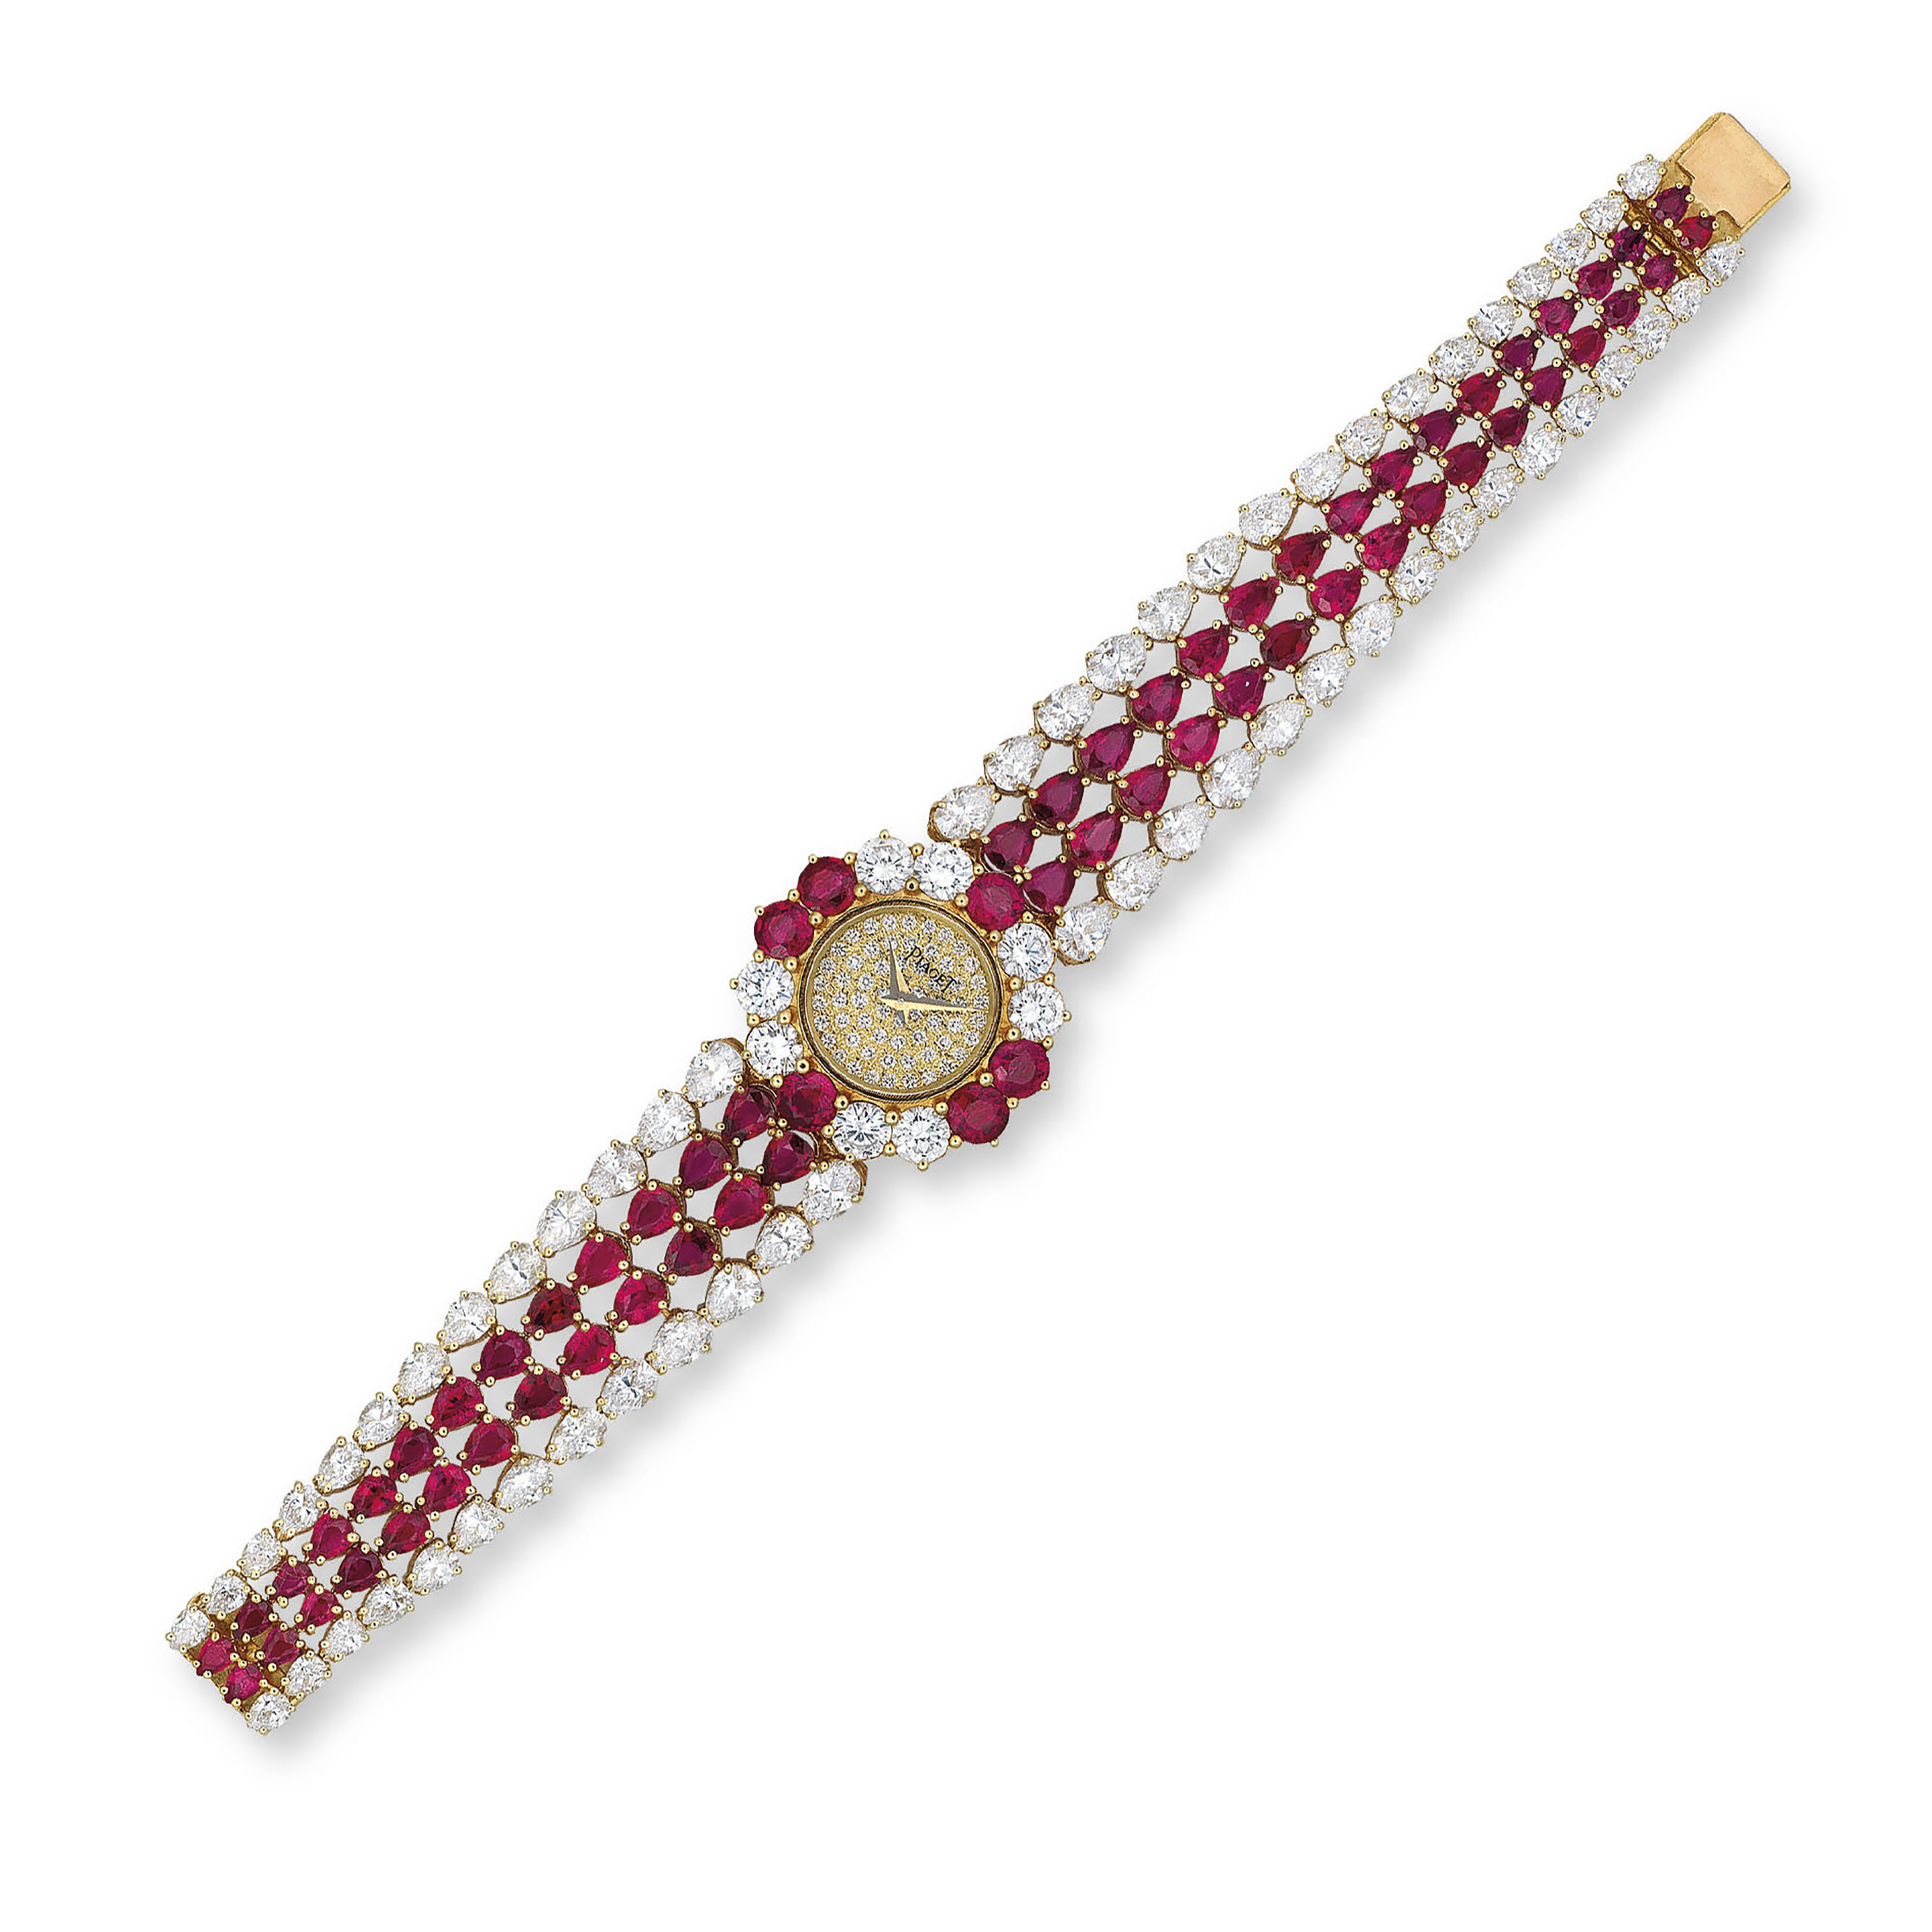 A RUBY AND DIAMOND WATCH, BY P